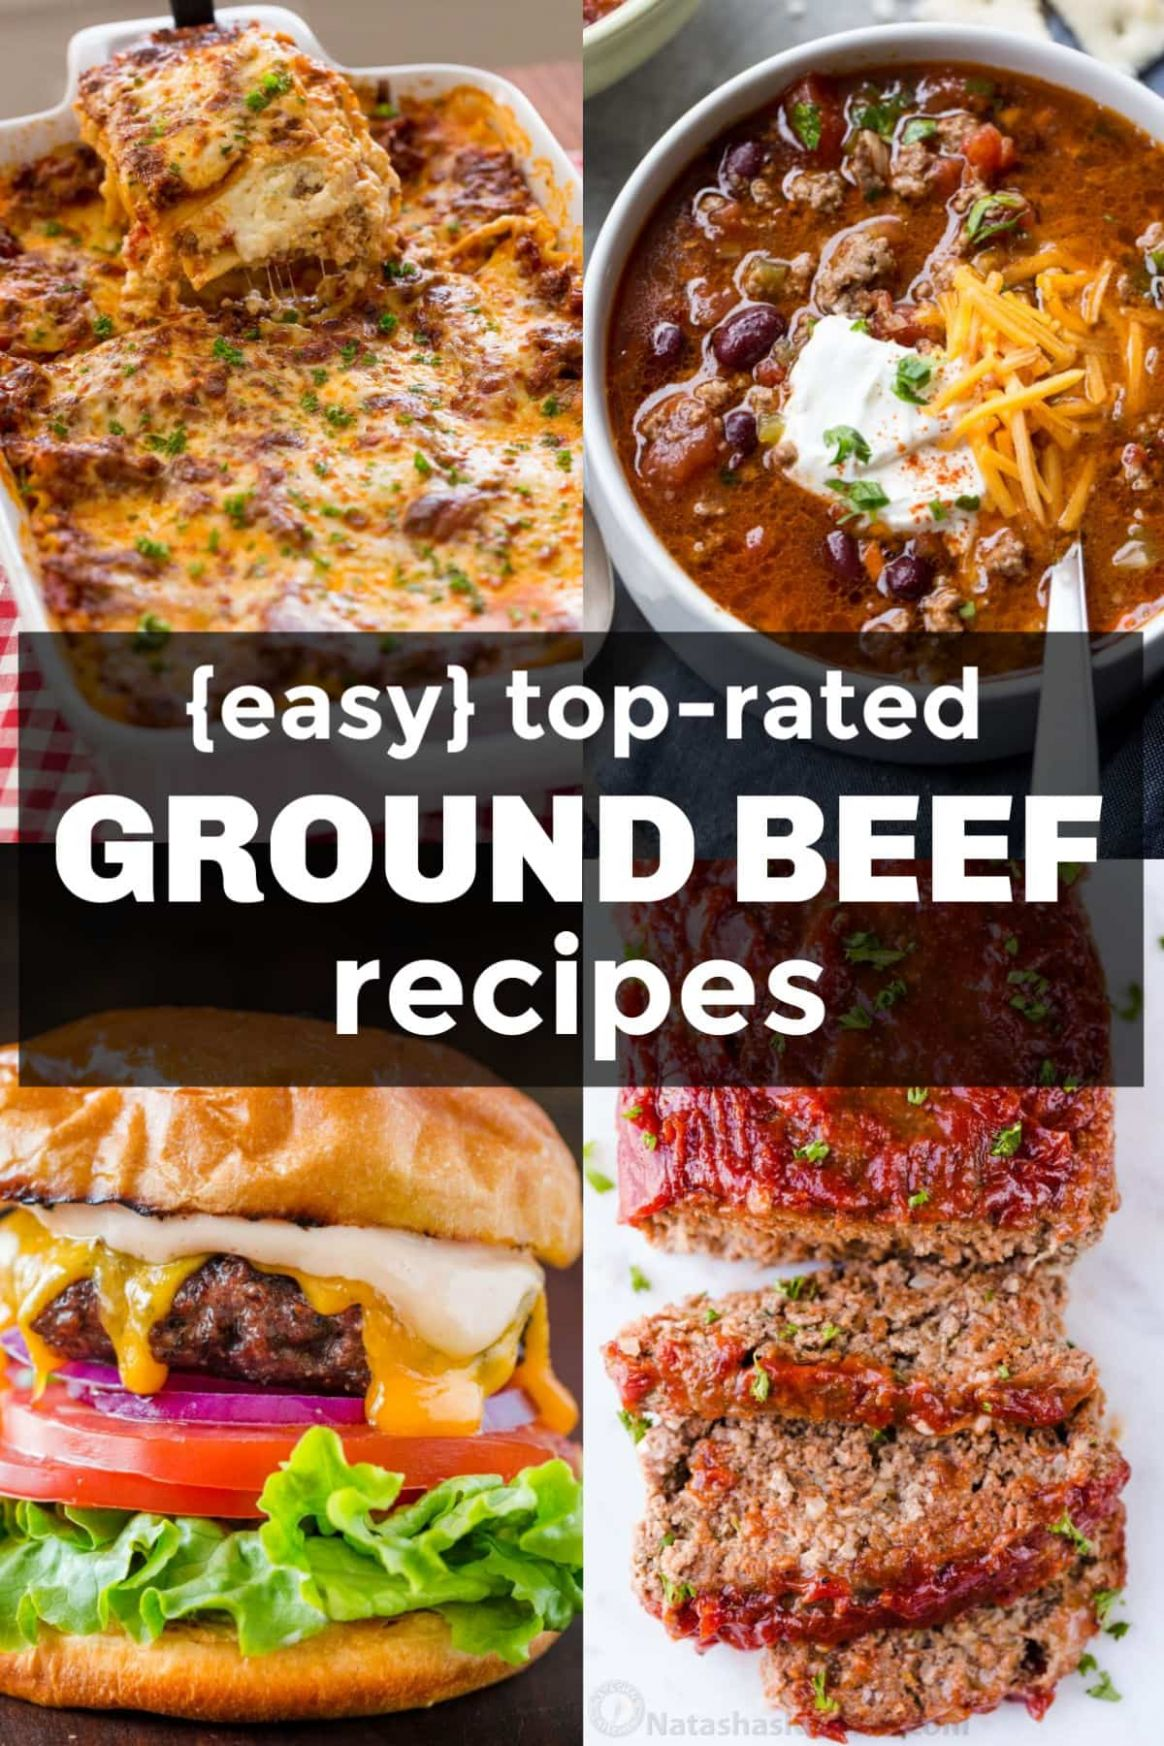 How to Cook Ground Beef for Ground Beef Recipes - Simple Recipes Hamburger Meat